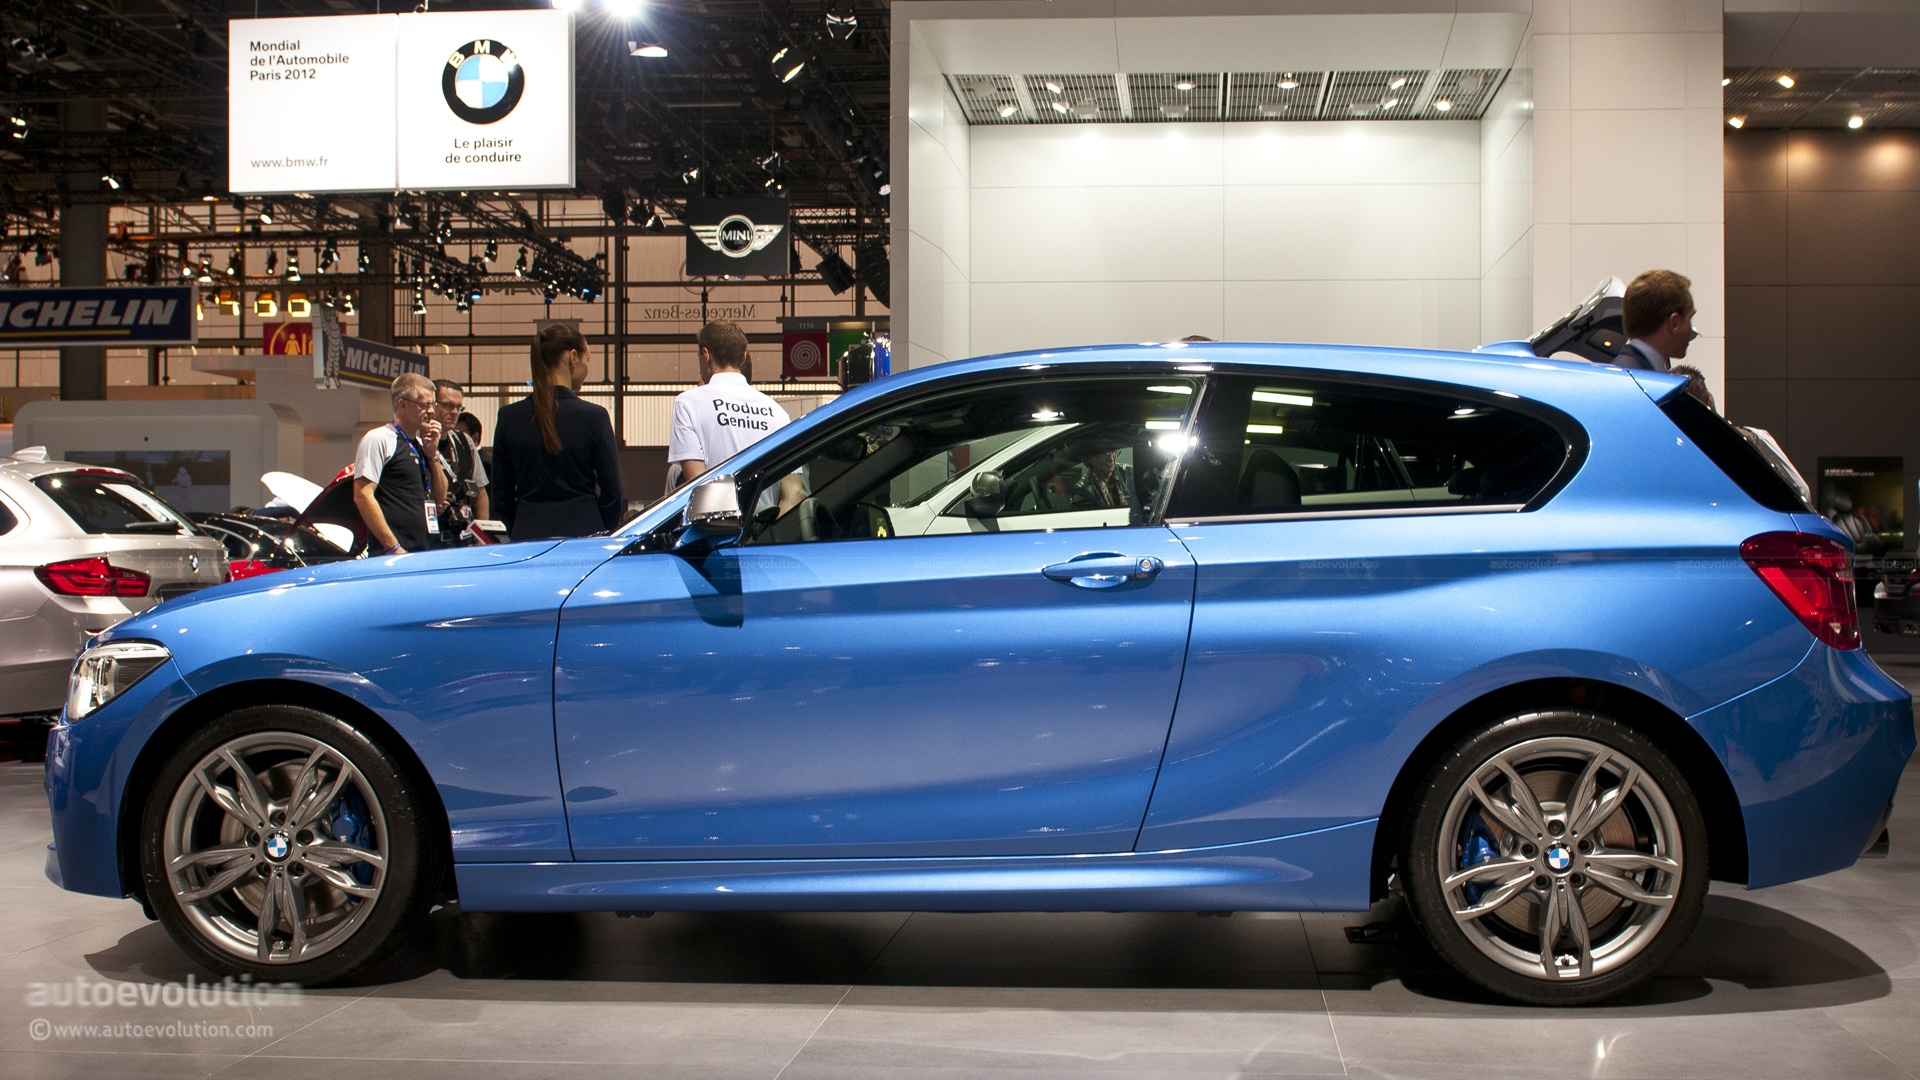 All Wheel Drive Sedans >> Paris 2012: BMW M135i xDrive [Live Photos] - autoevolution